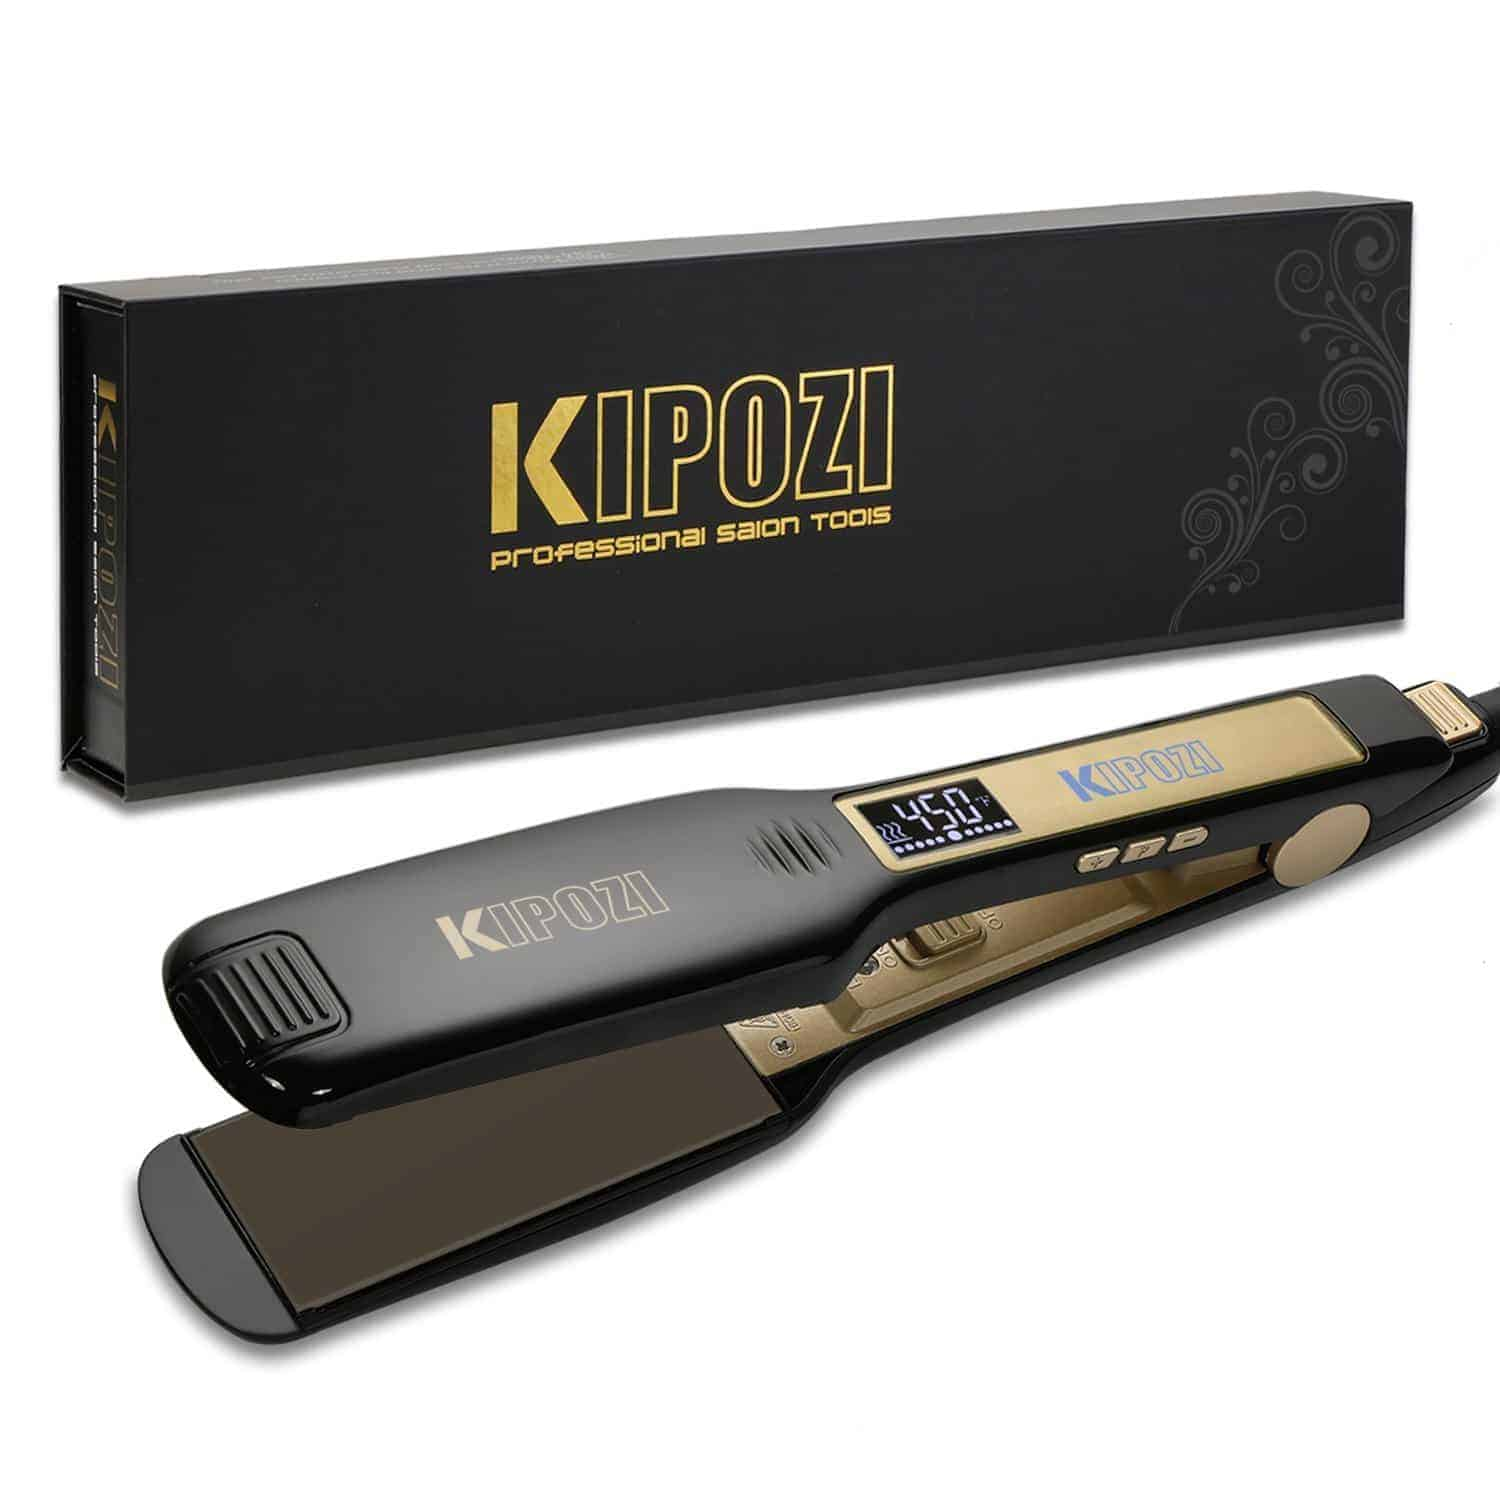 KIPOZI professional titanium hair straightener review 1